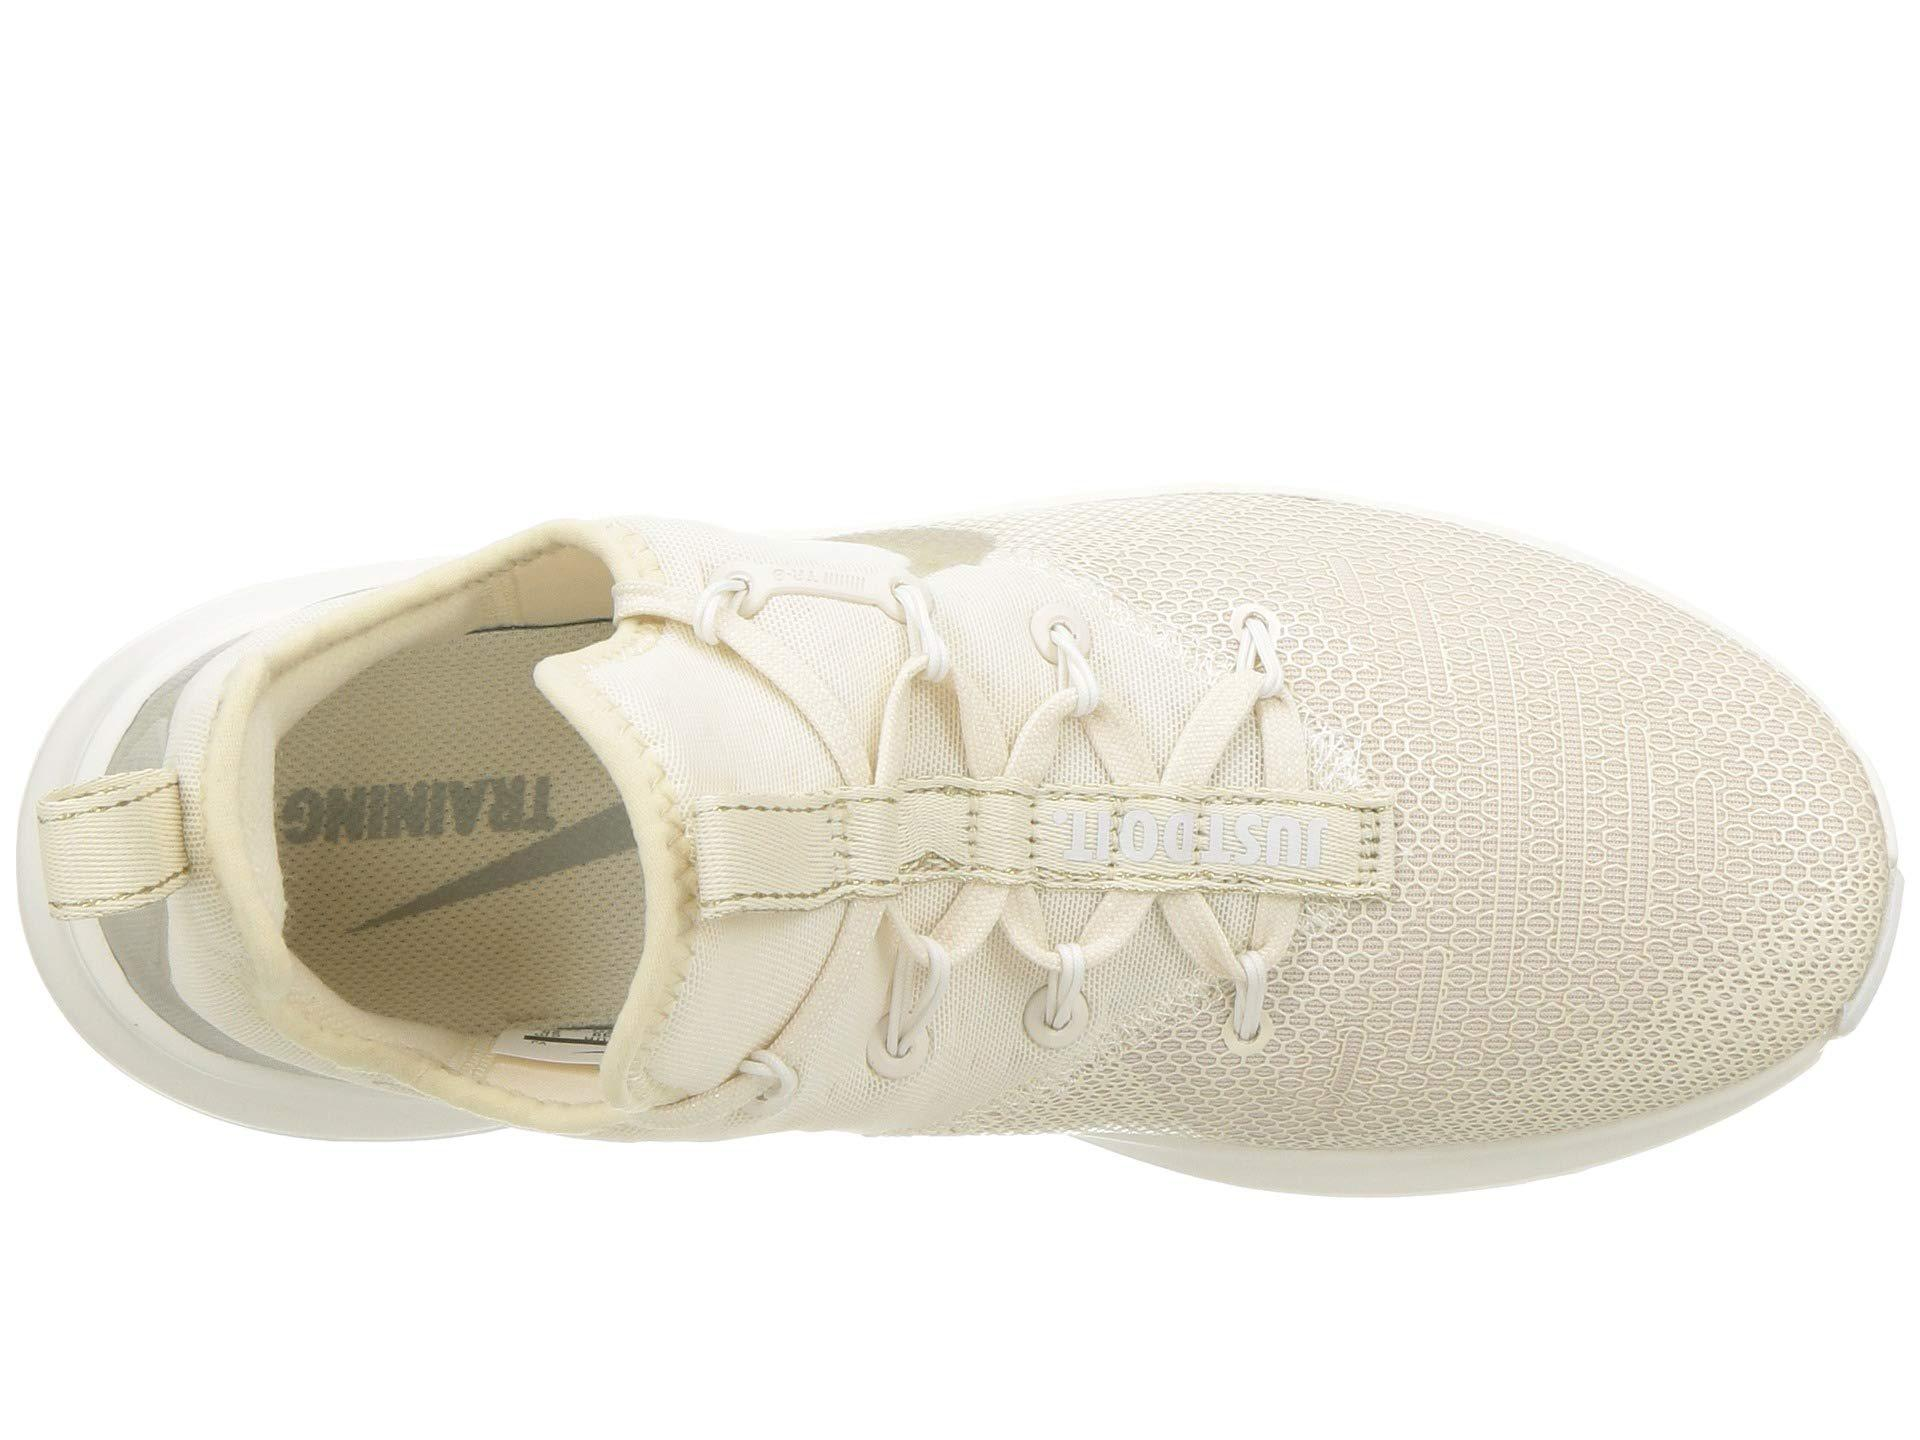 Nike Synthetic Free Tr 8 Champagne